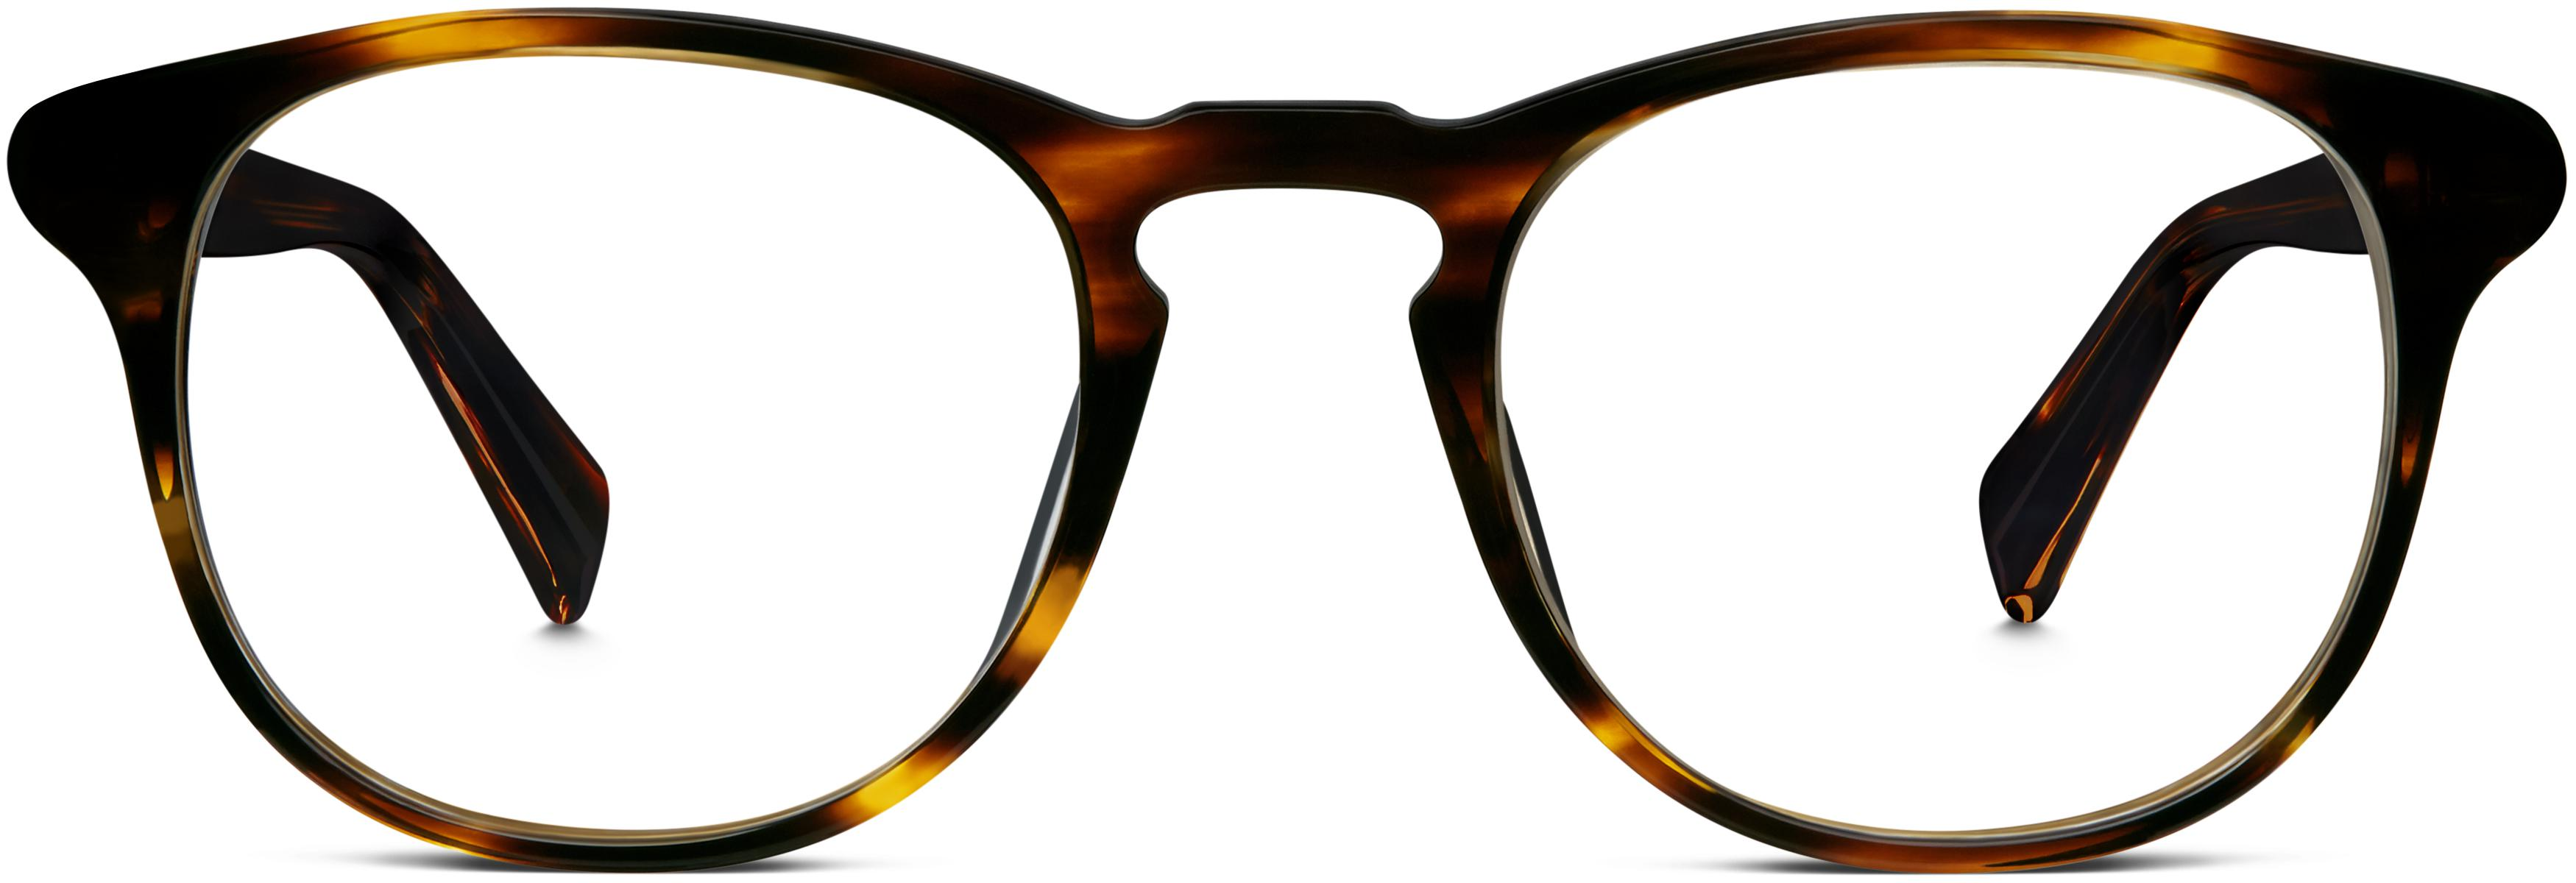 71ff59b6c67e Men s Eyeglasses